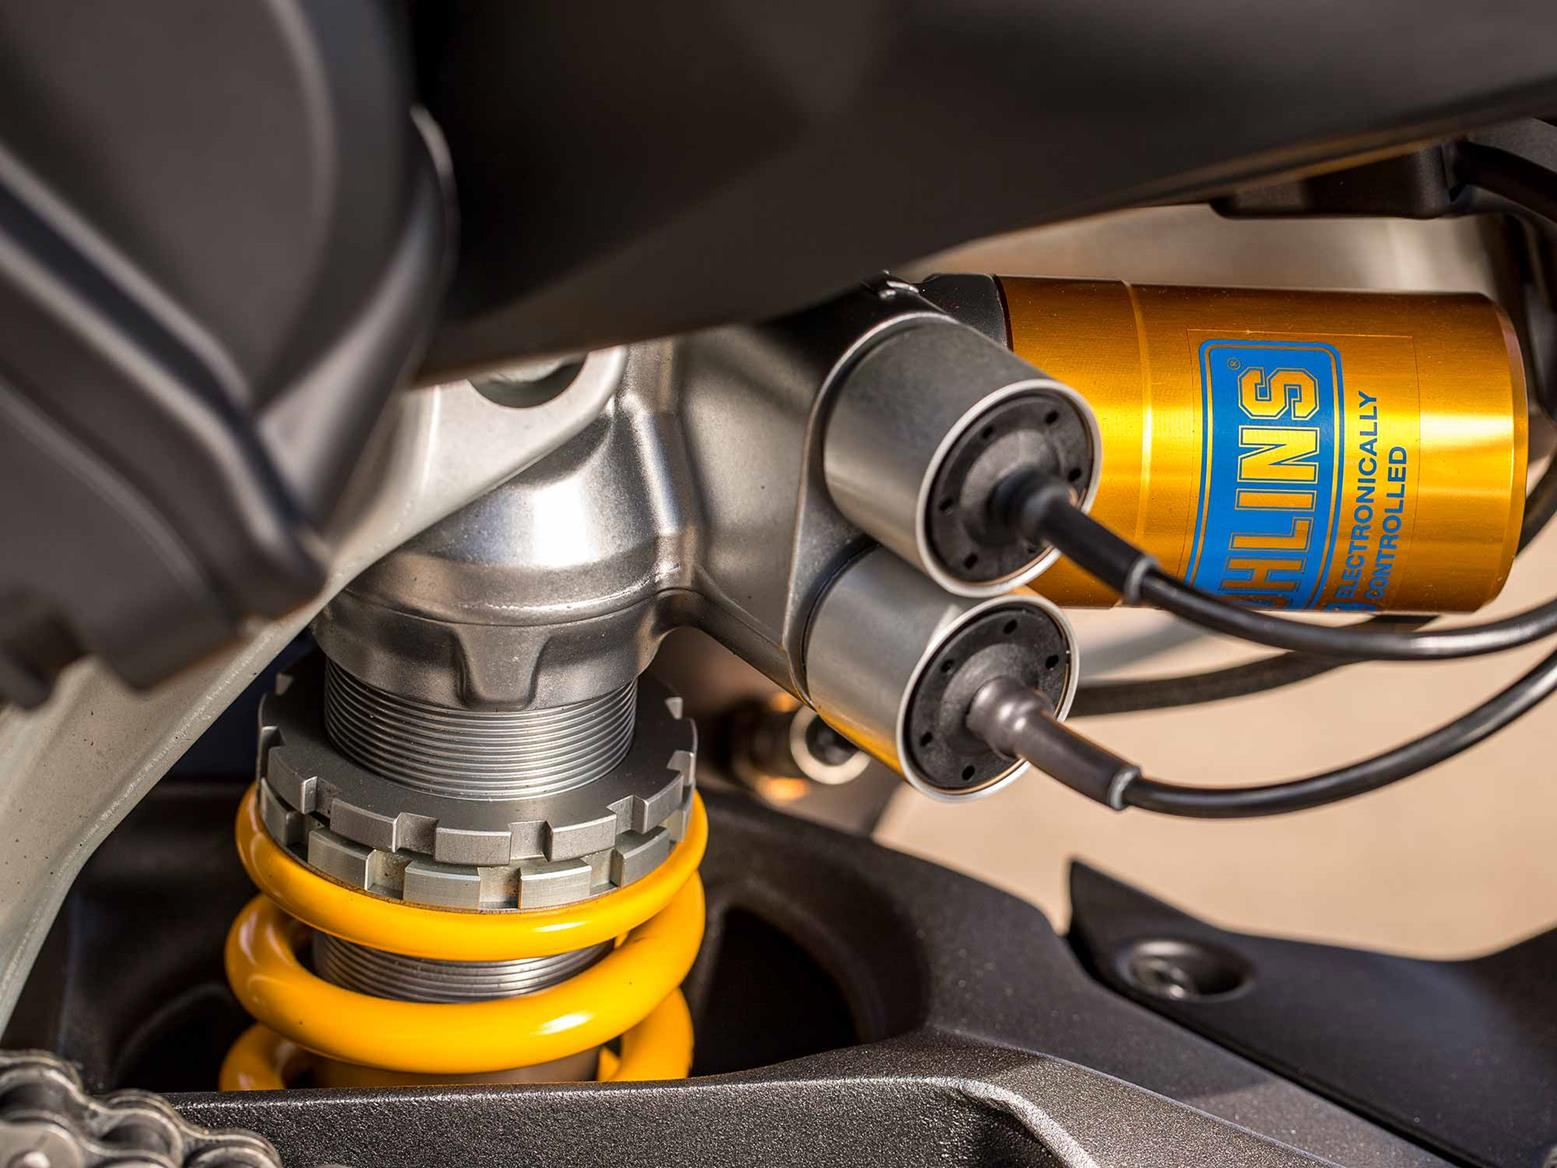 The semi-active Öhlins rear shock on the Ducati Streetfighter V4 S